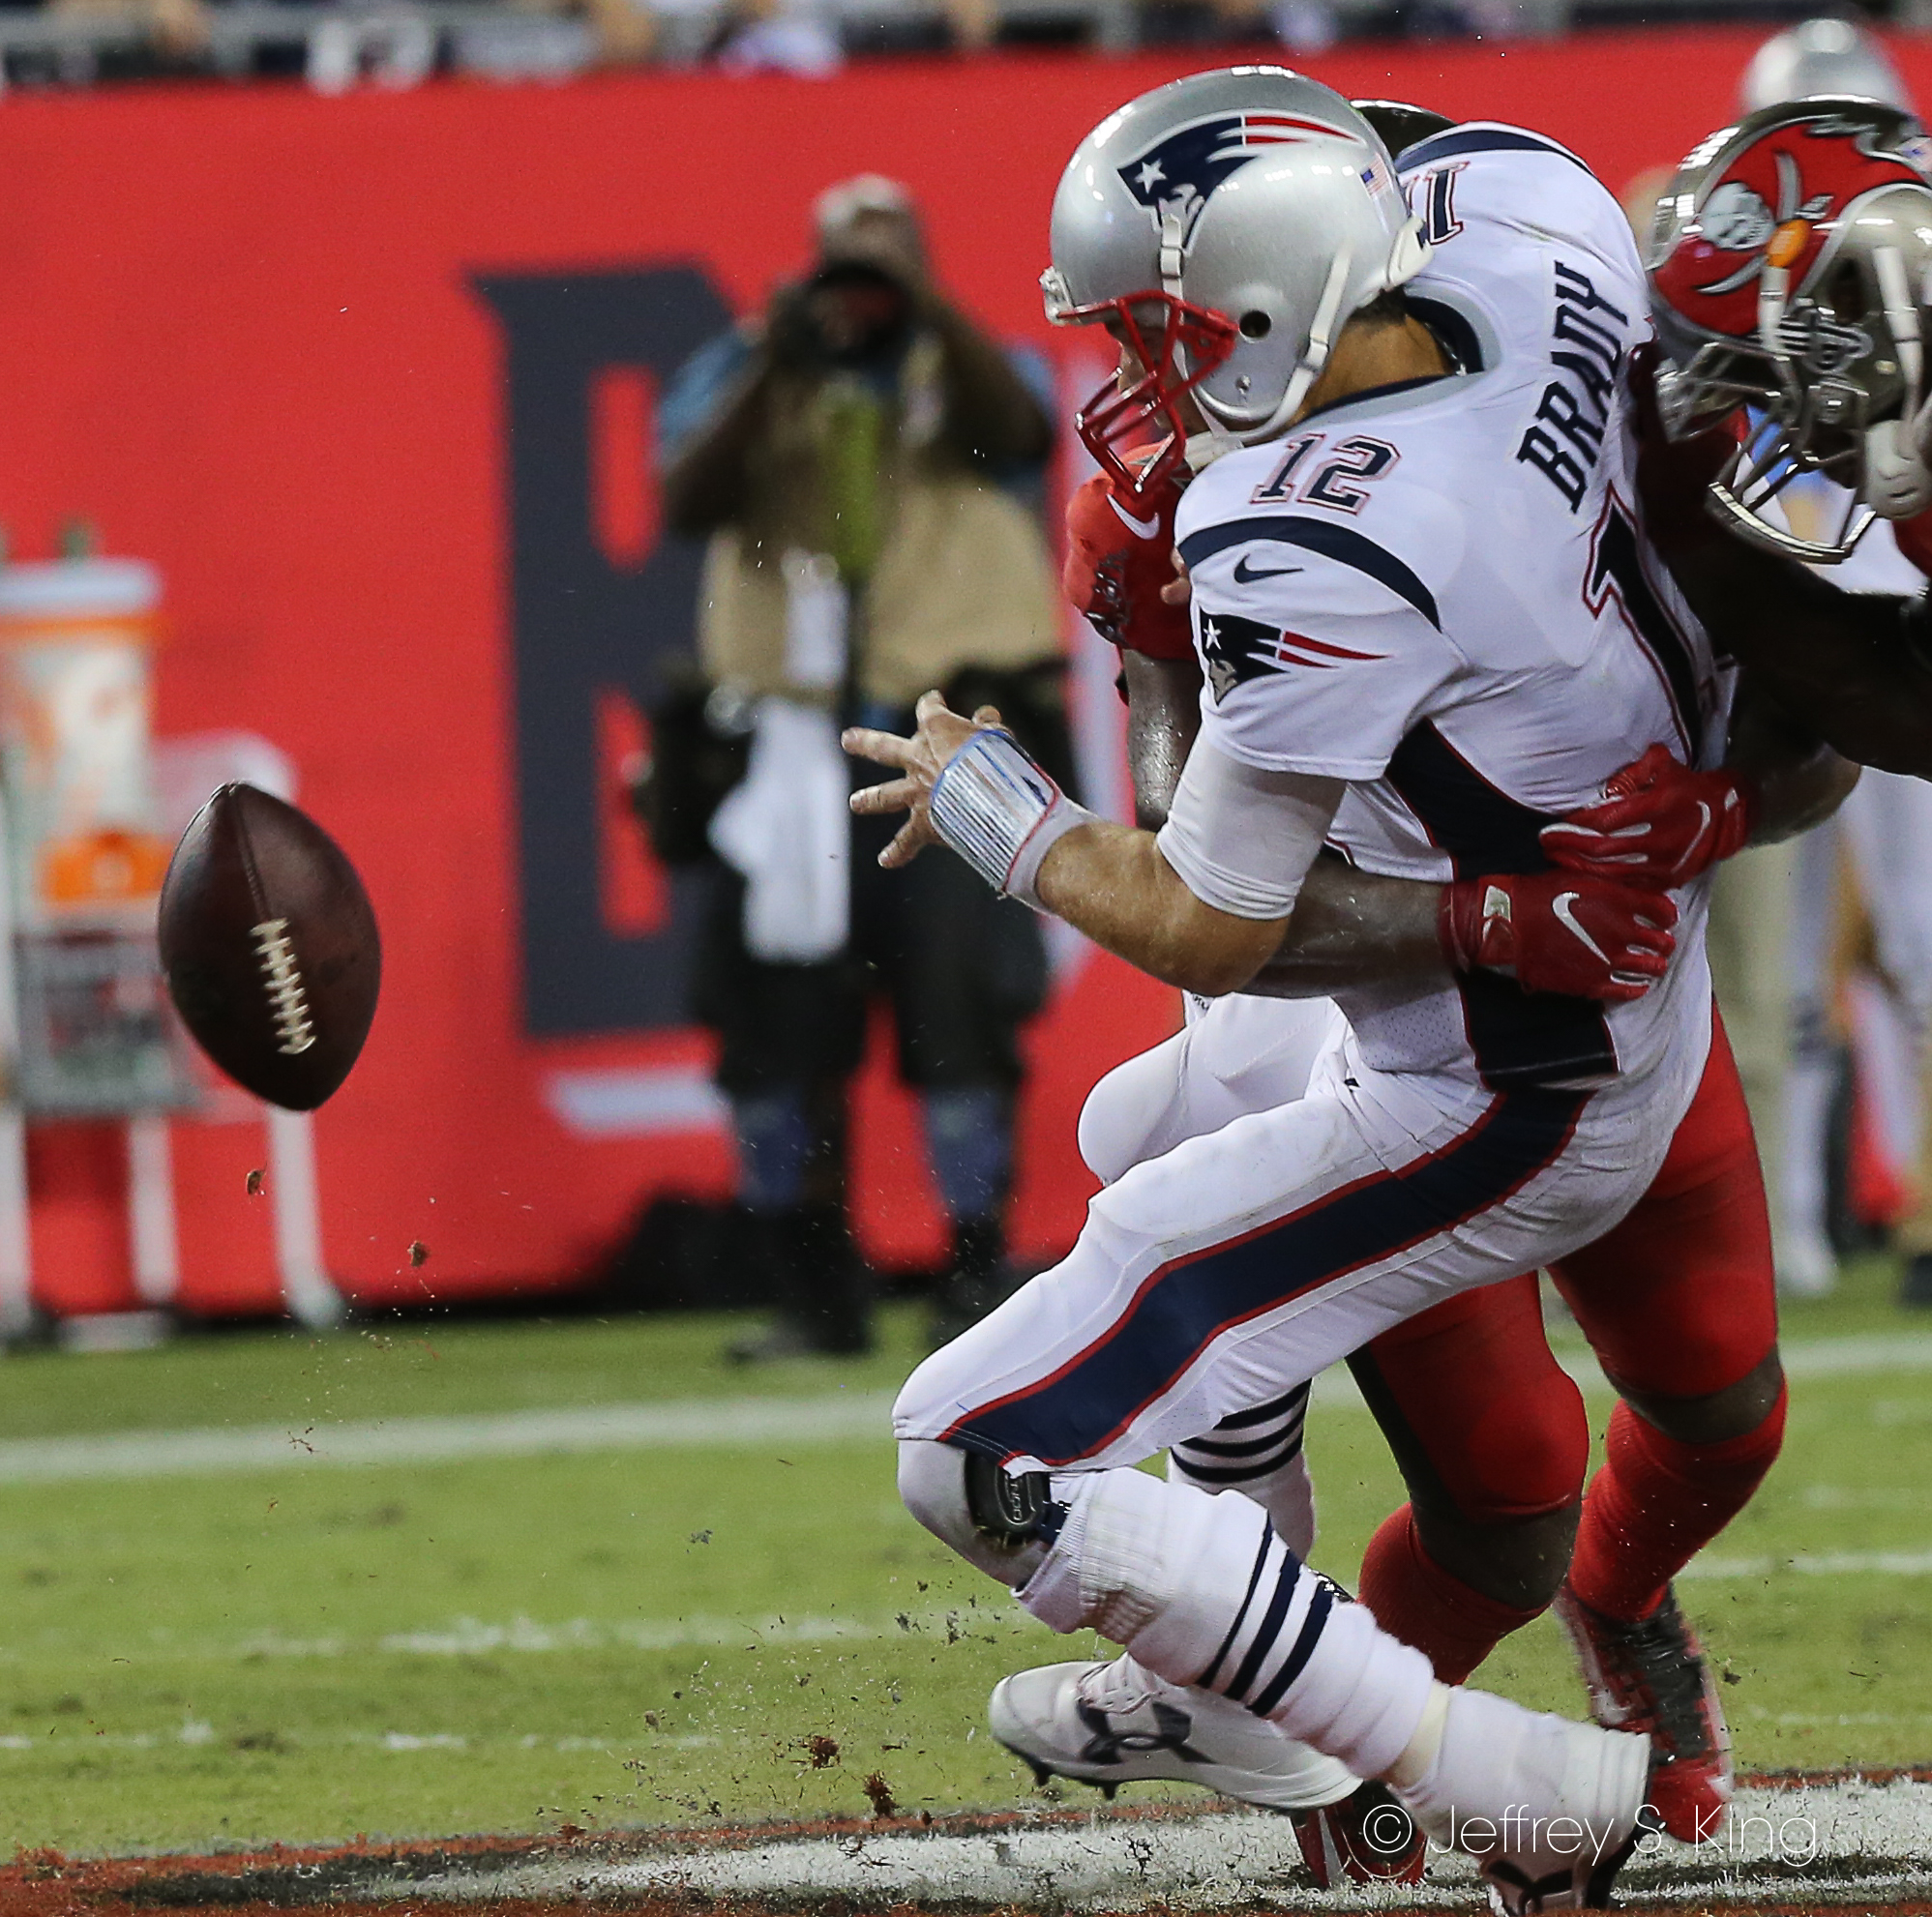 Will Clarke sacks Brady and forces a fumble./JEFFREY S. KING